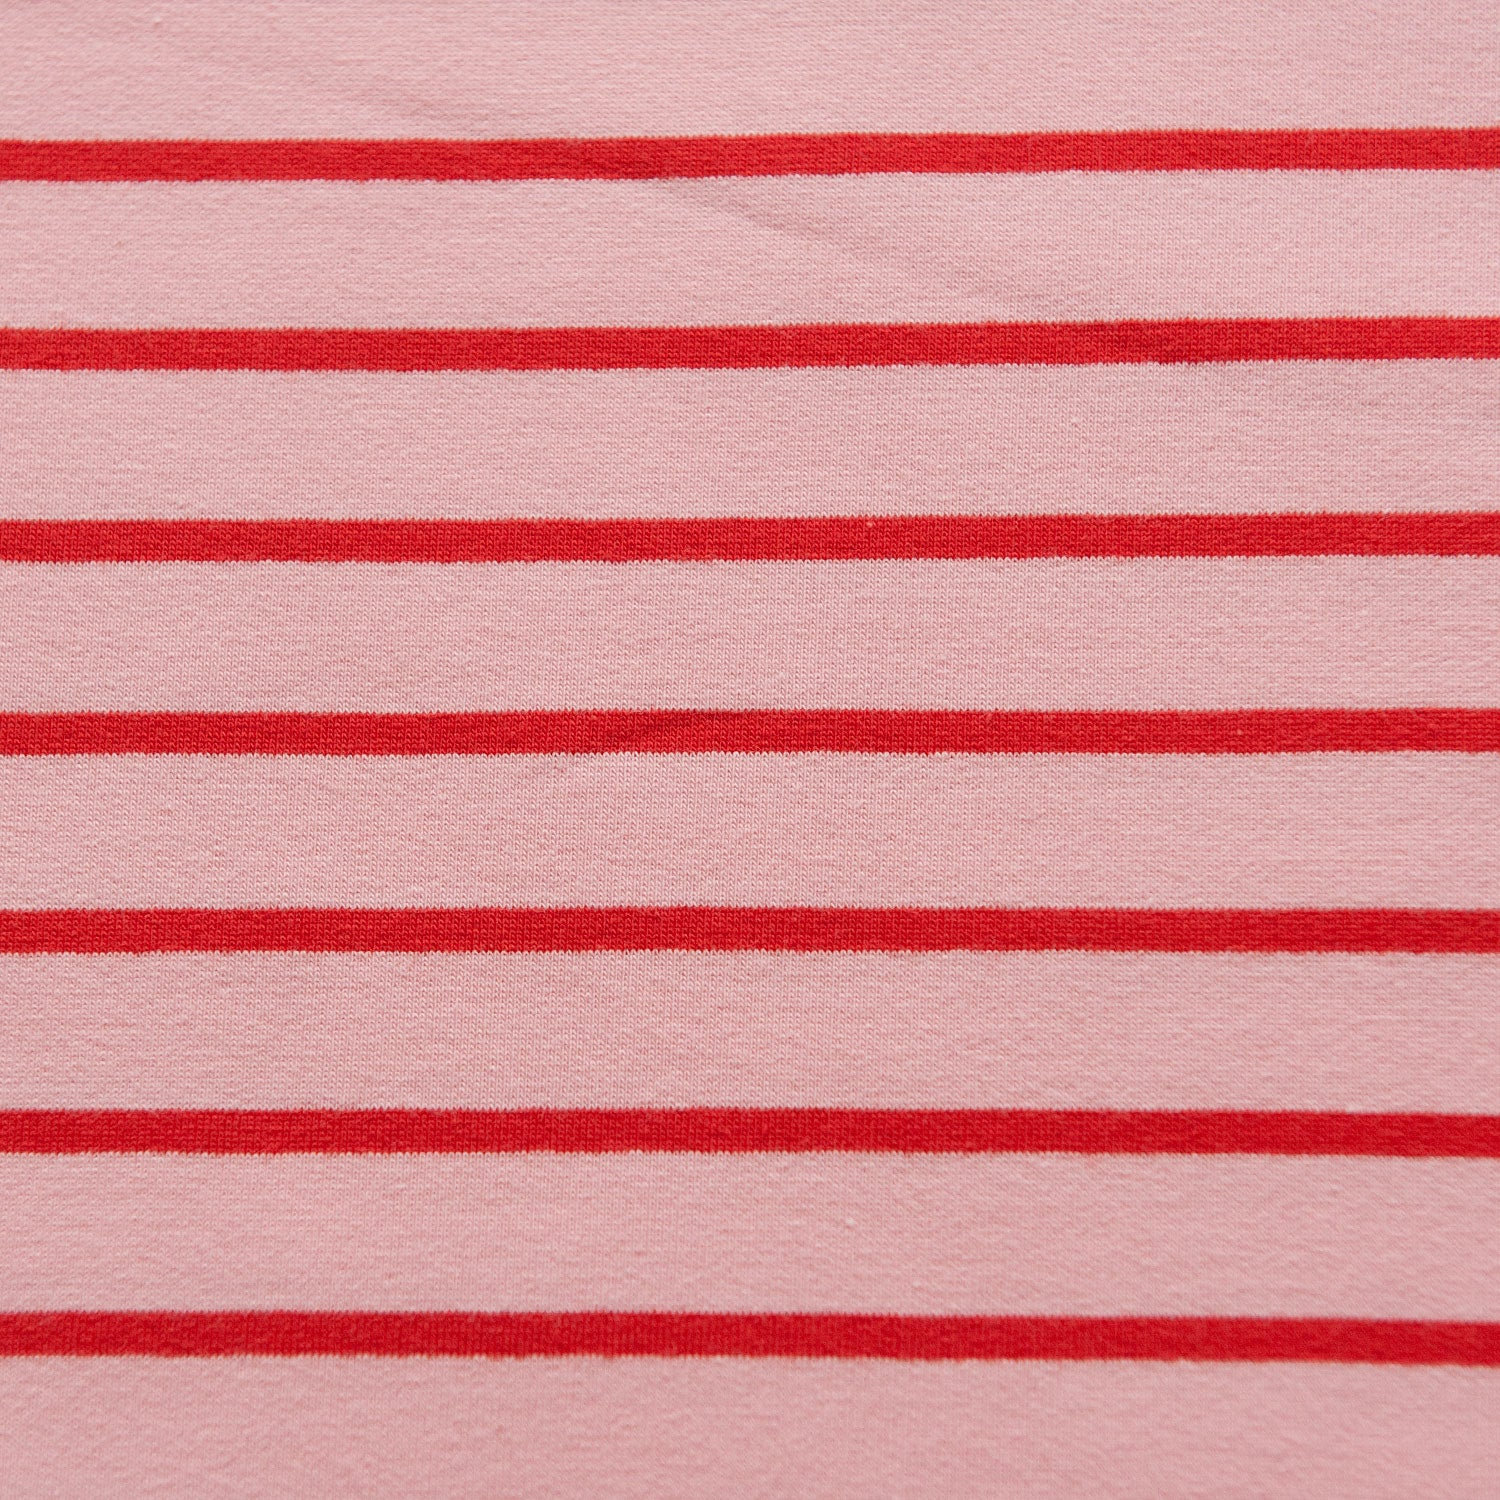 Pink And Red Striped French Terry